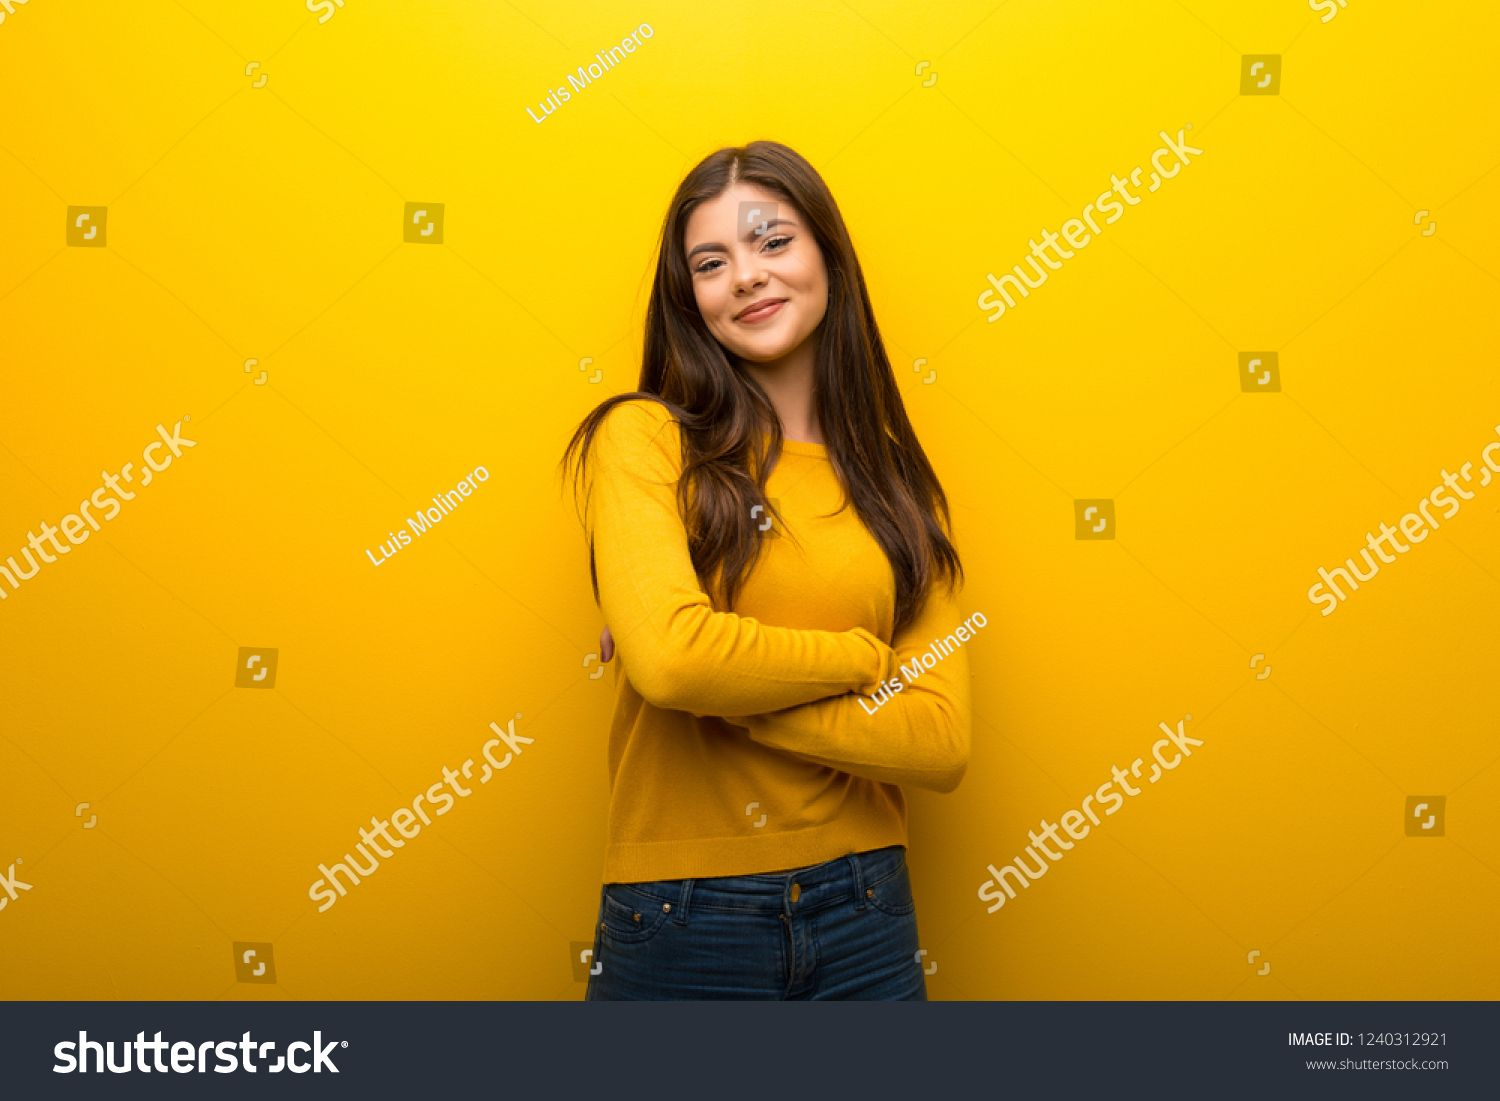 Teenager Girl On Vibrant Yellow Background Keeping The Arms